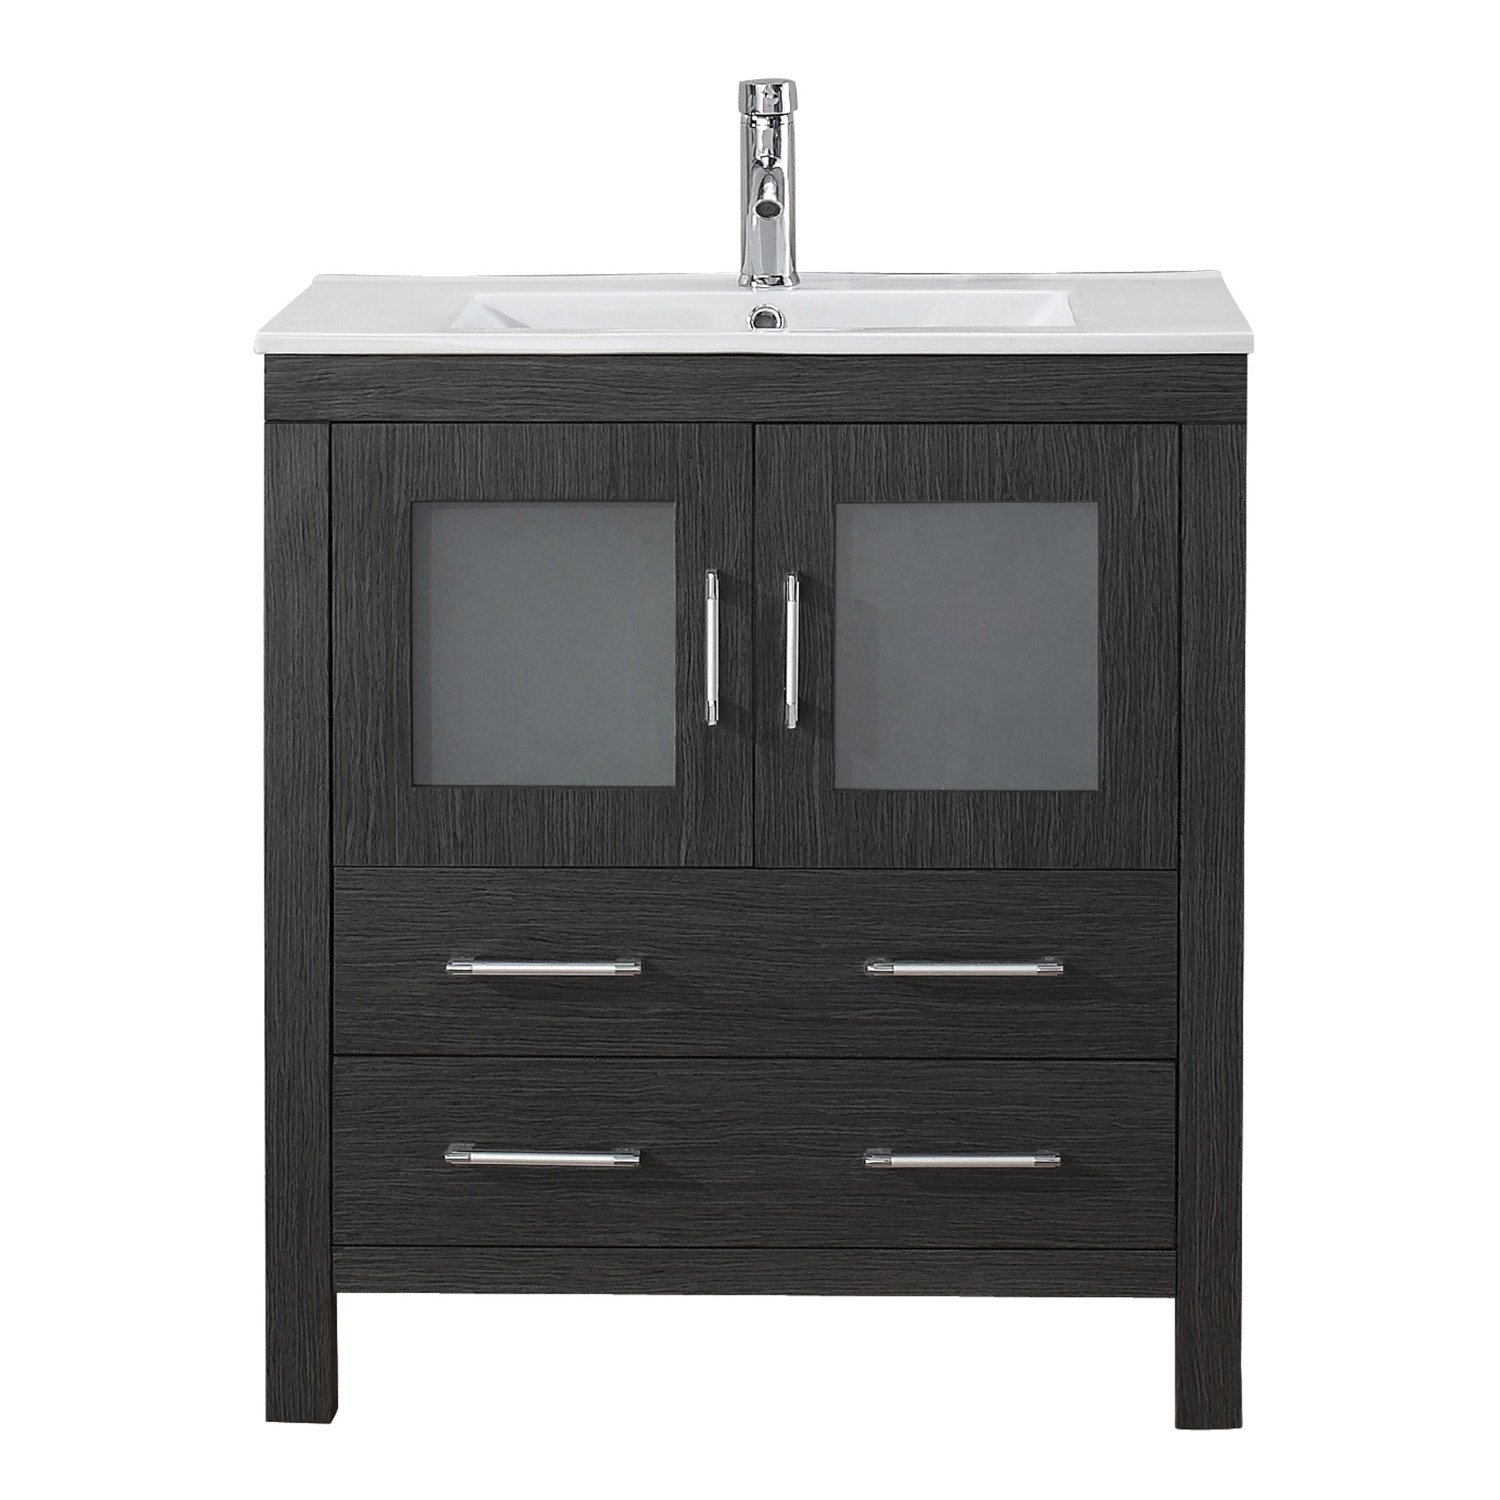 Virtu USA KS-70030-C-ZG-001 Dior 30'' single Bathroom Vanity with White Ceramic Top and Square Sink with Brushed Nickel Faucet and Mirror, Zebra Grey by Virtu USA